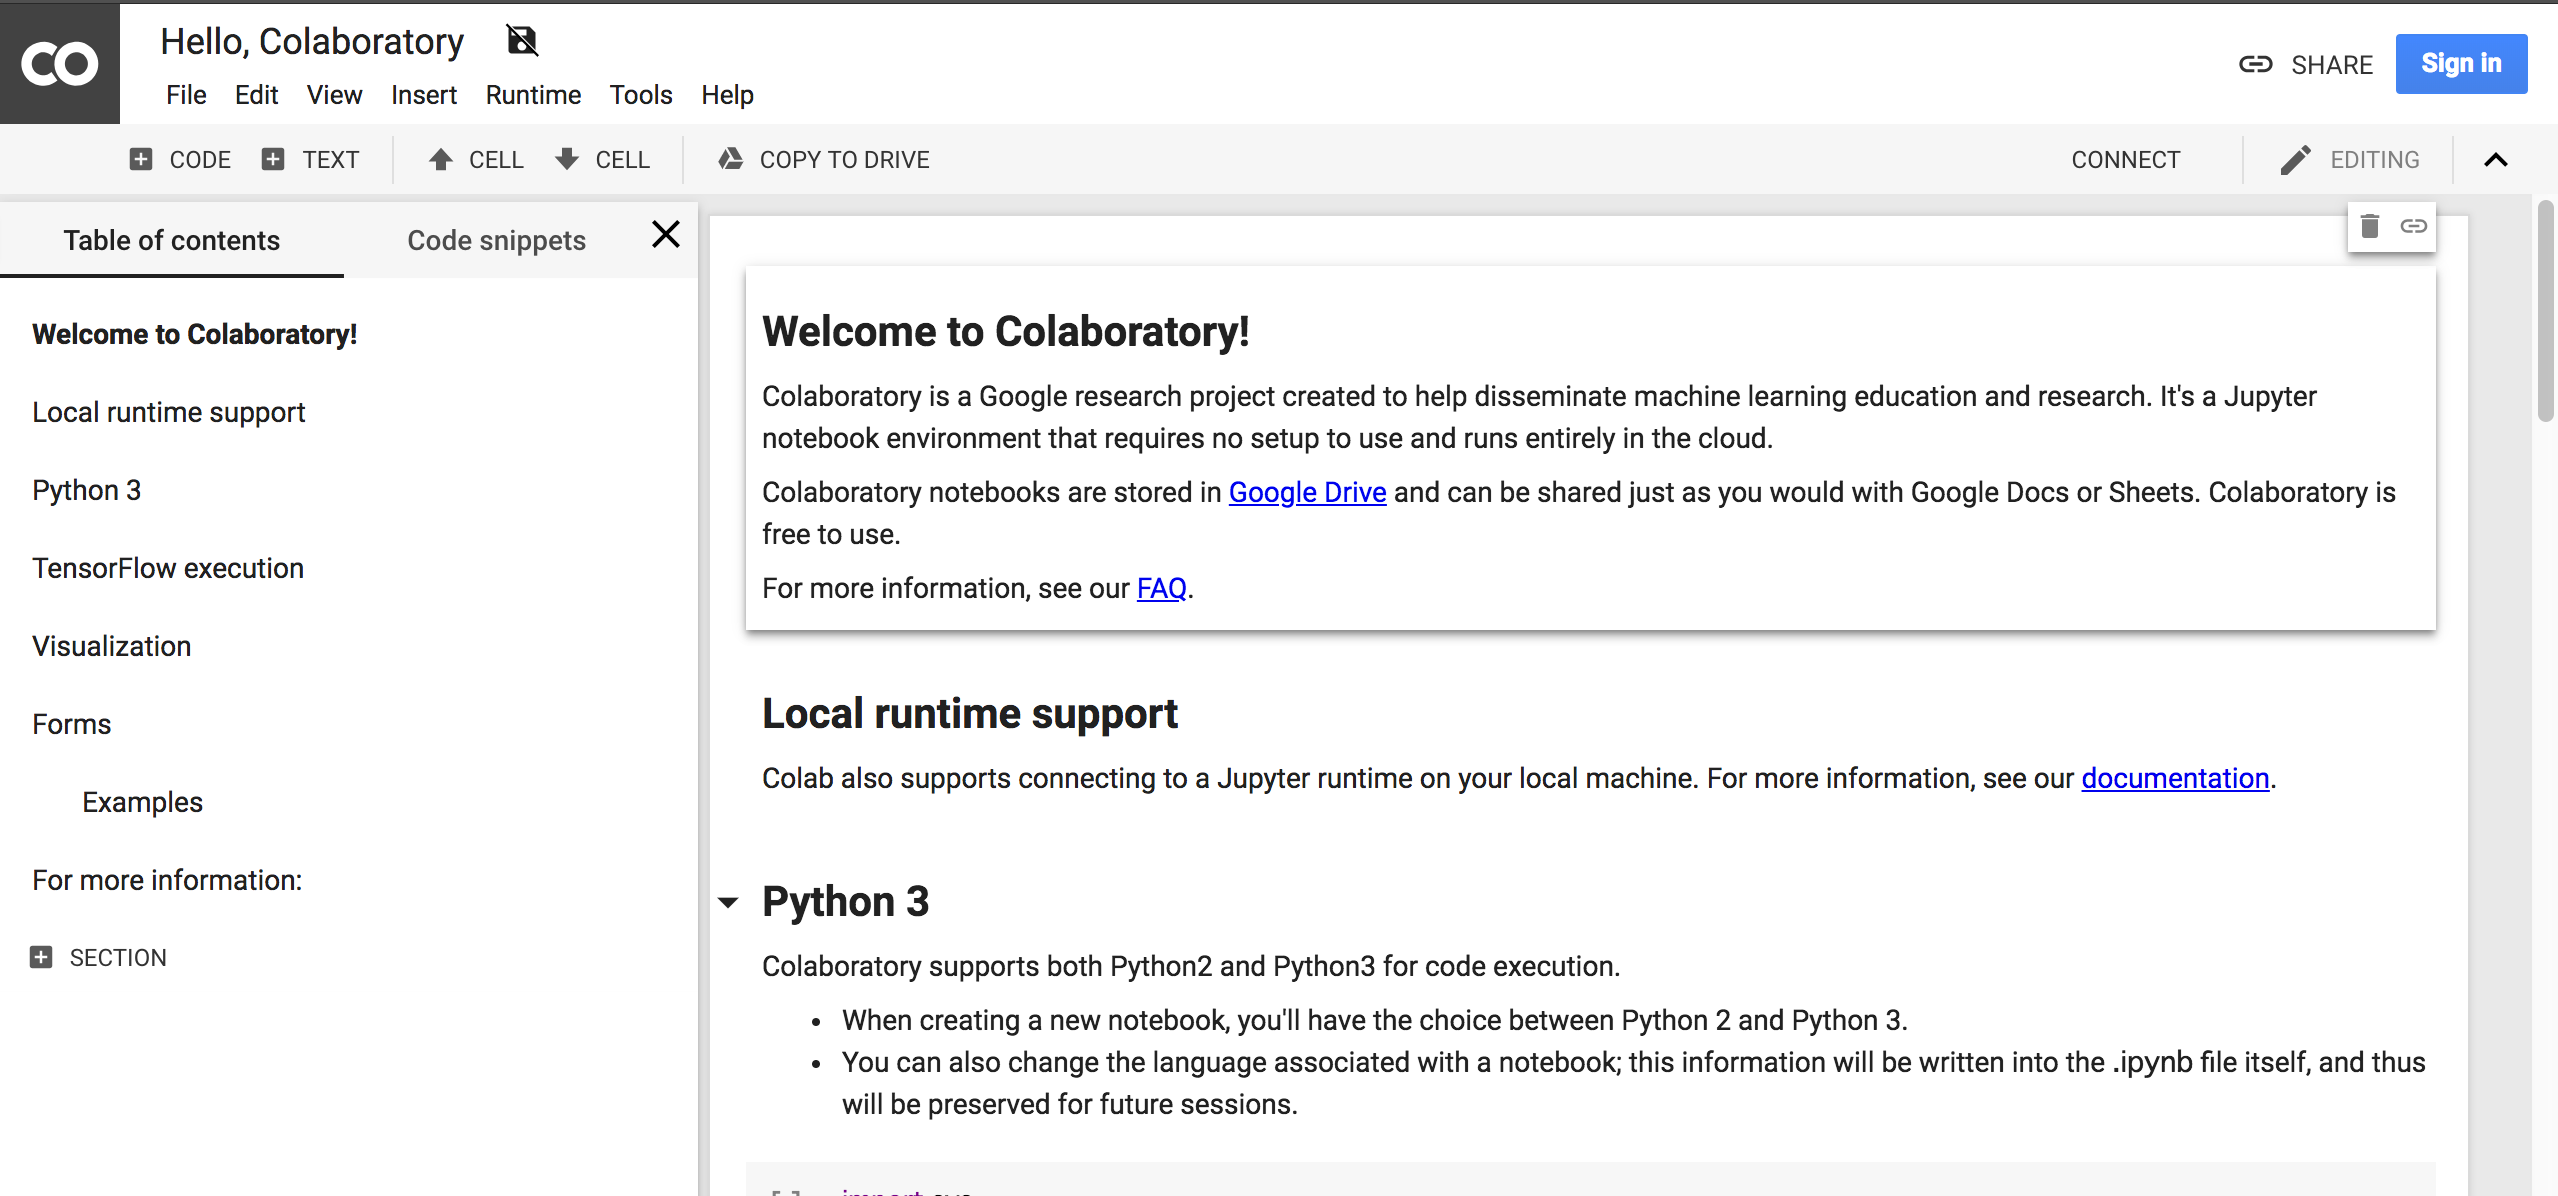 Google Colaboratory is the best tool for machine learning